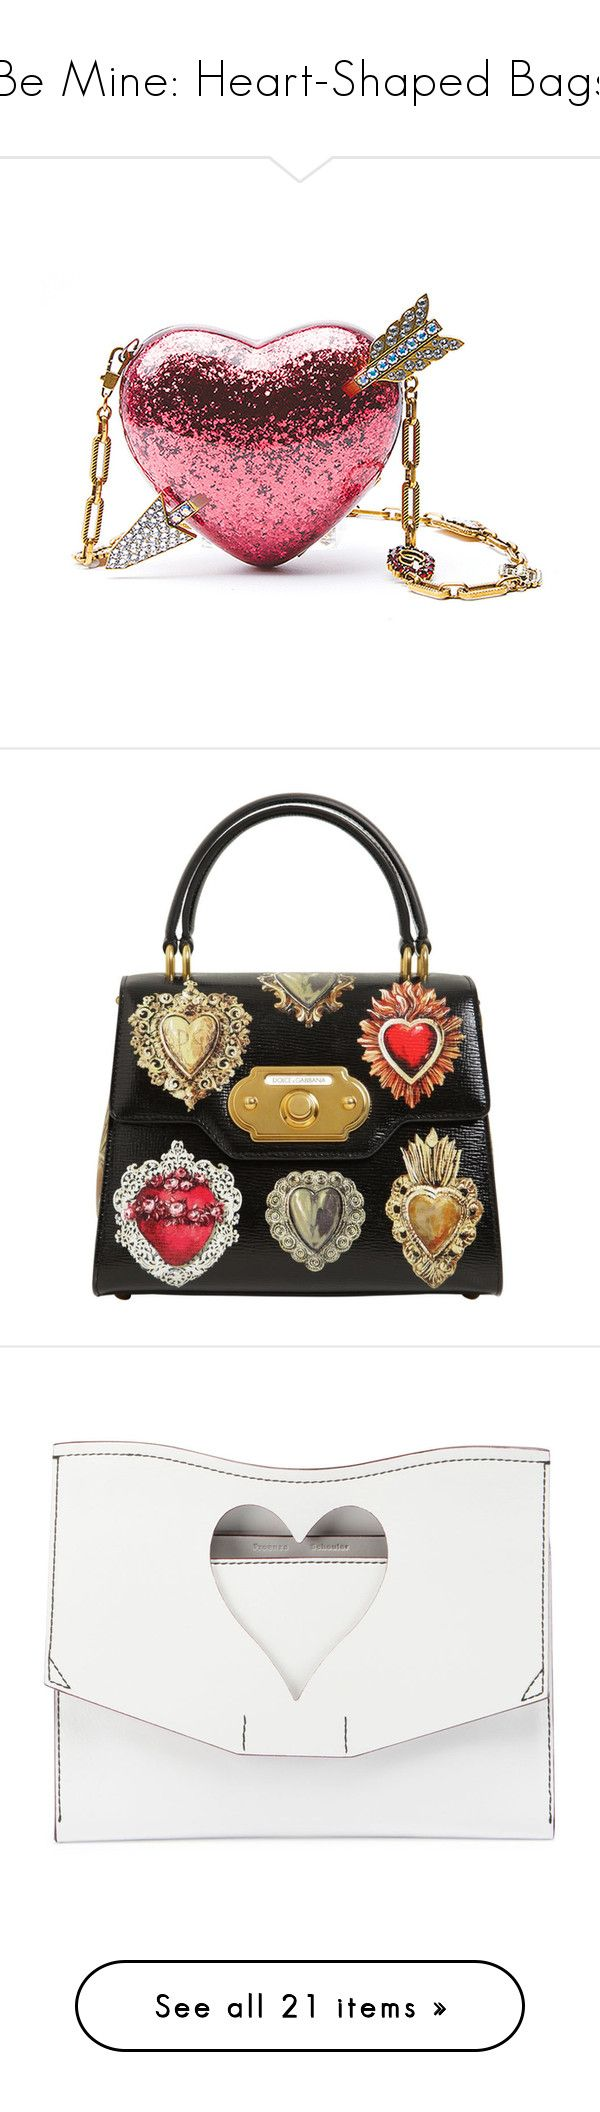 """""""Be Mine: Heart-Shaped Bags"""" by polyvore-editorial ❤ liked on Polyvore featuring heartshapedbags, bags, handbags, clutches, borse, hearts, multi, handbags clutches, white clutches and embellished handbags"""